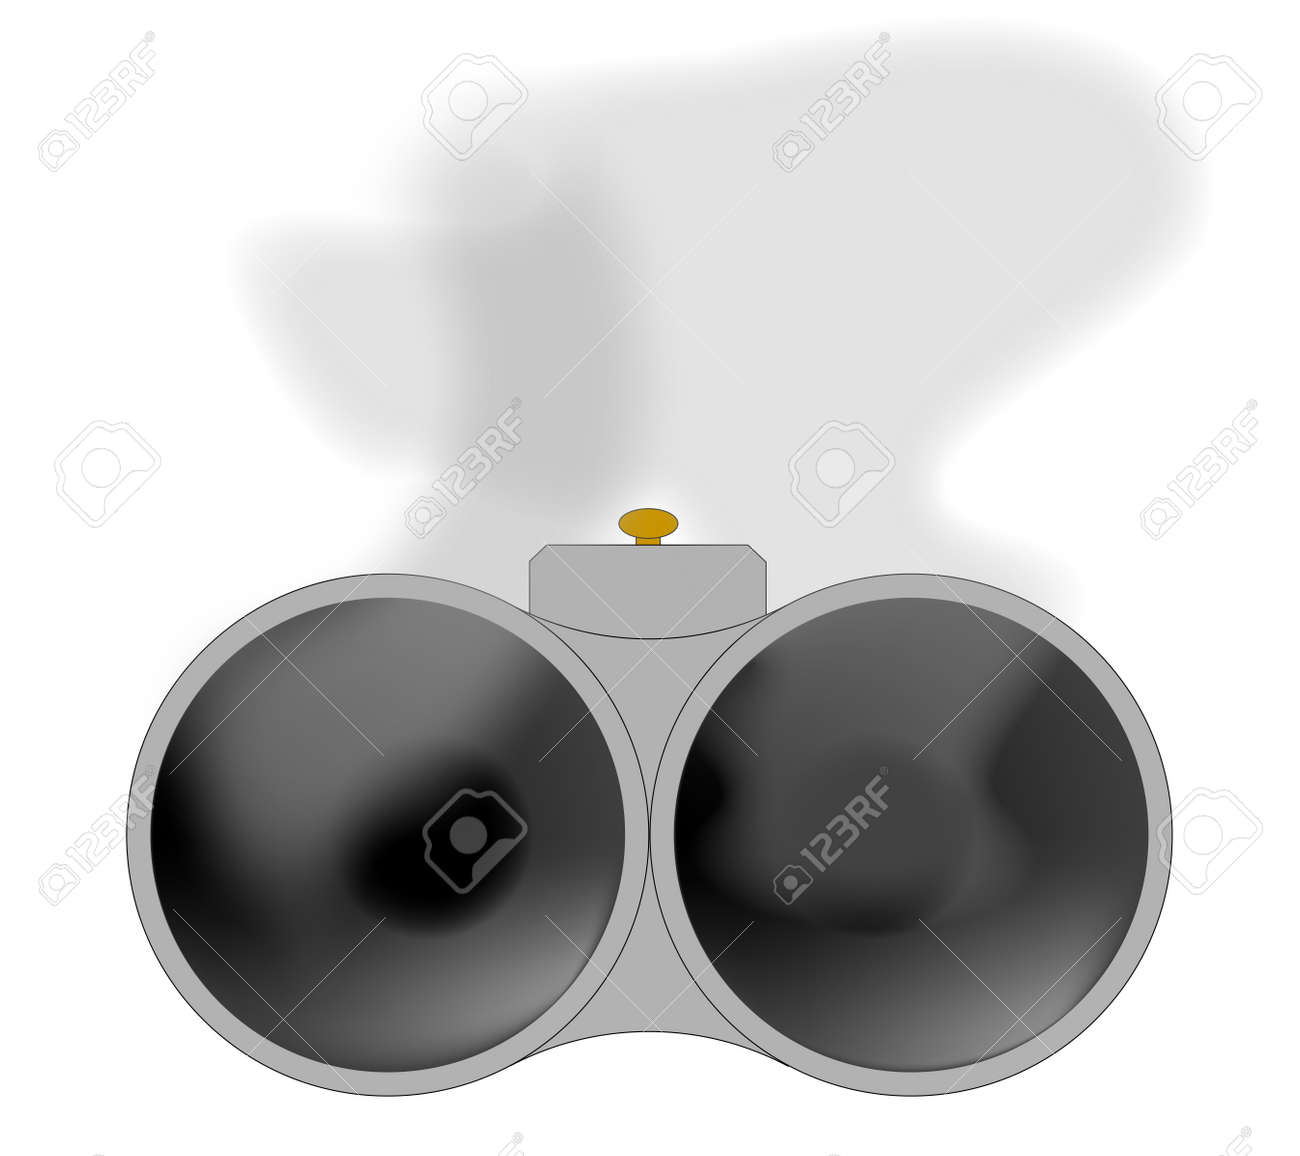 Looking Down The Barrel Of A Shotgun With Smoke Royalty Free Cliparts Vectors And Stock Illustration Image 18486516